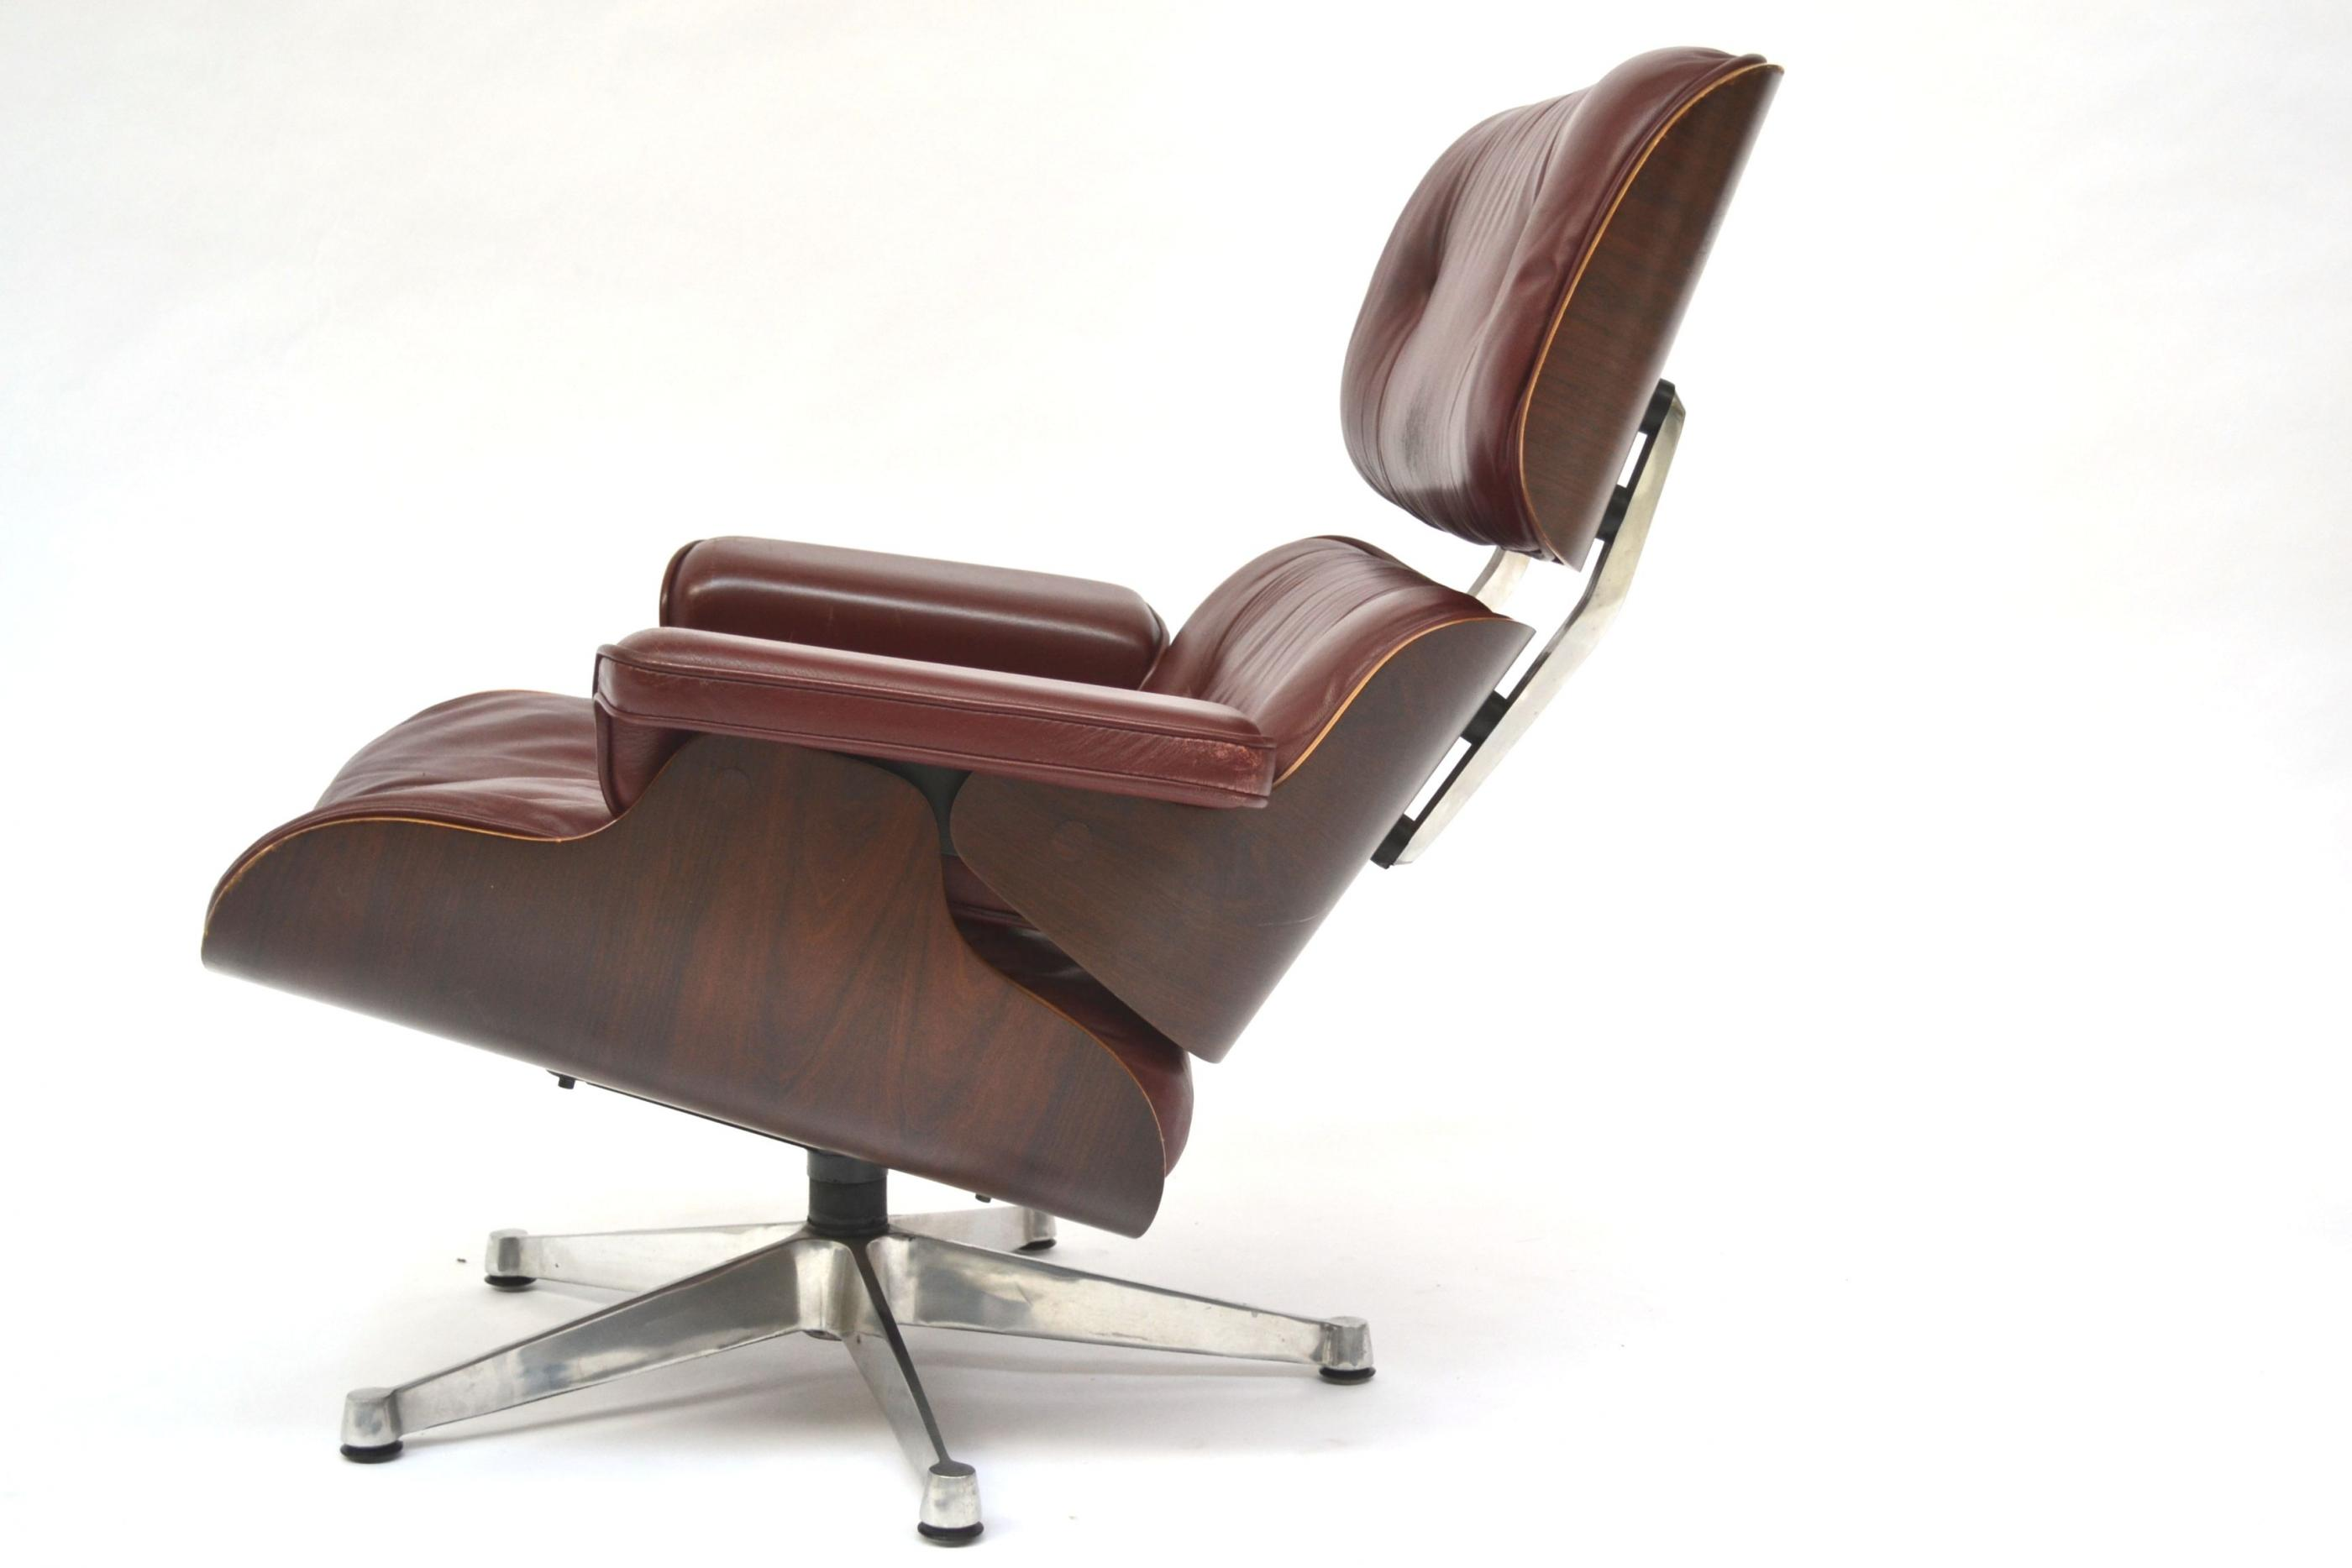 Charles Eames Lounge Chair Lounge Chair Charles Eames Icf Modernism